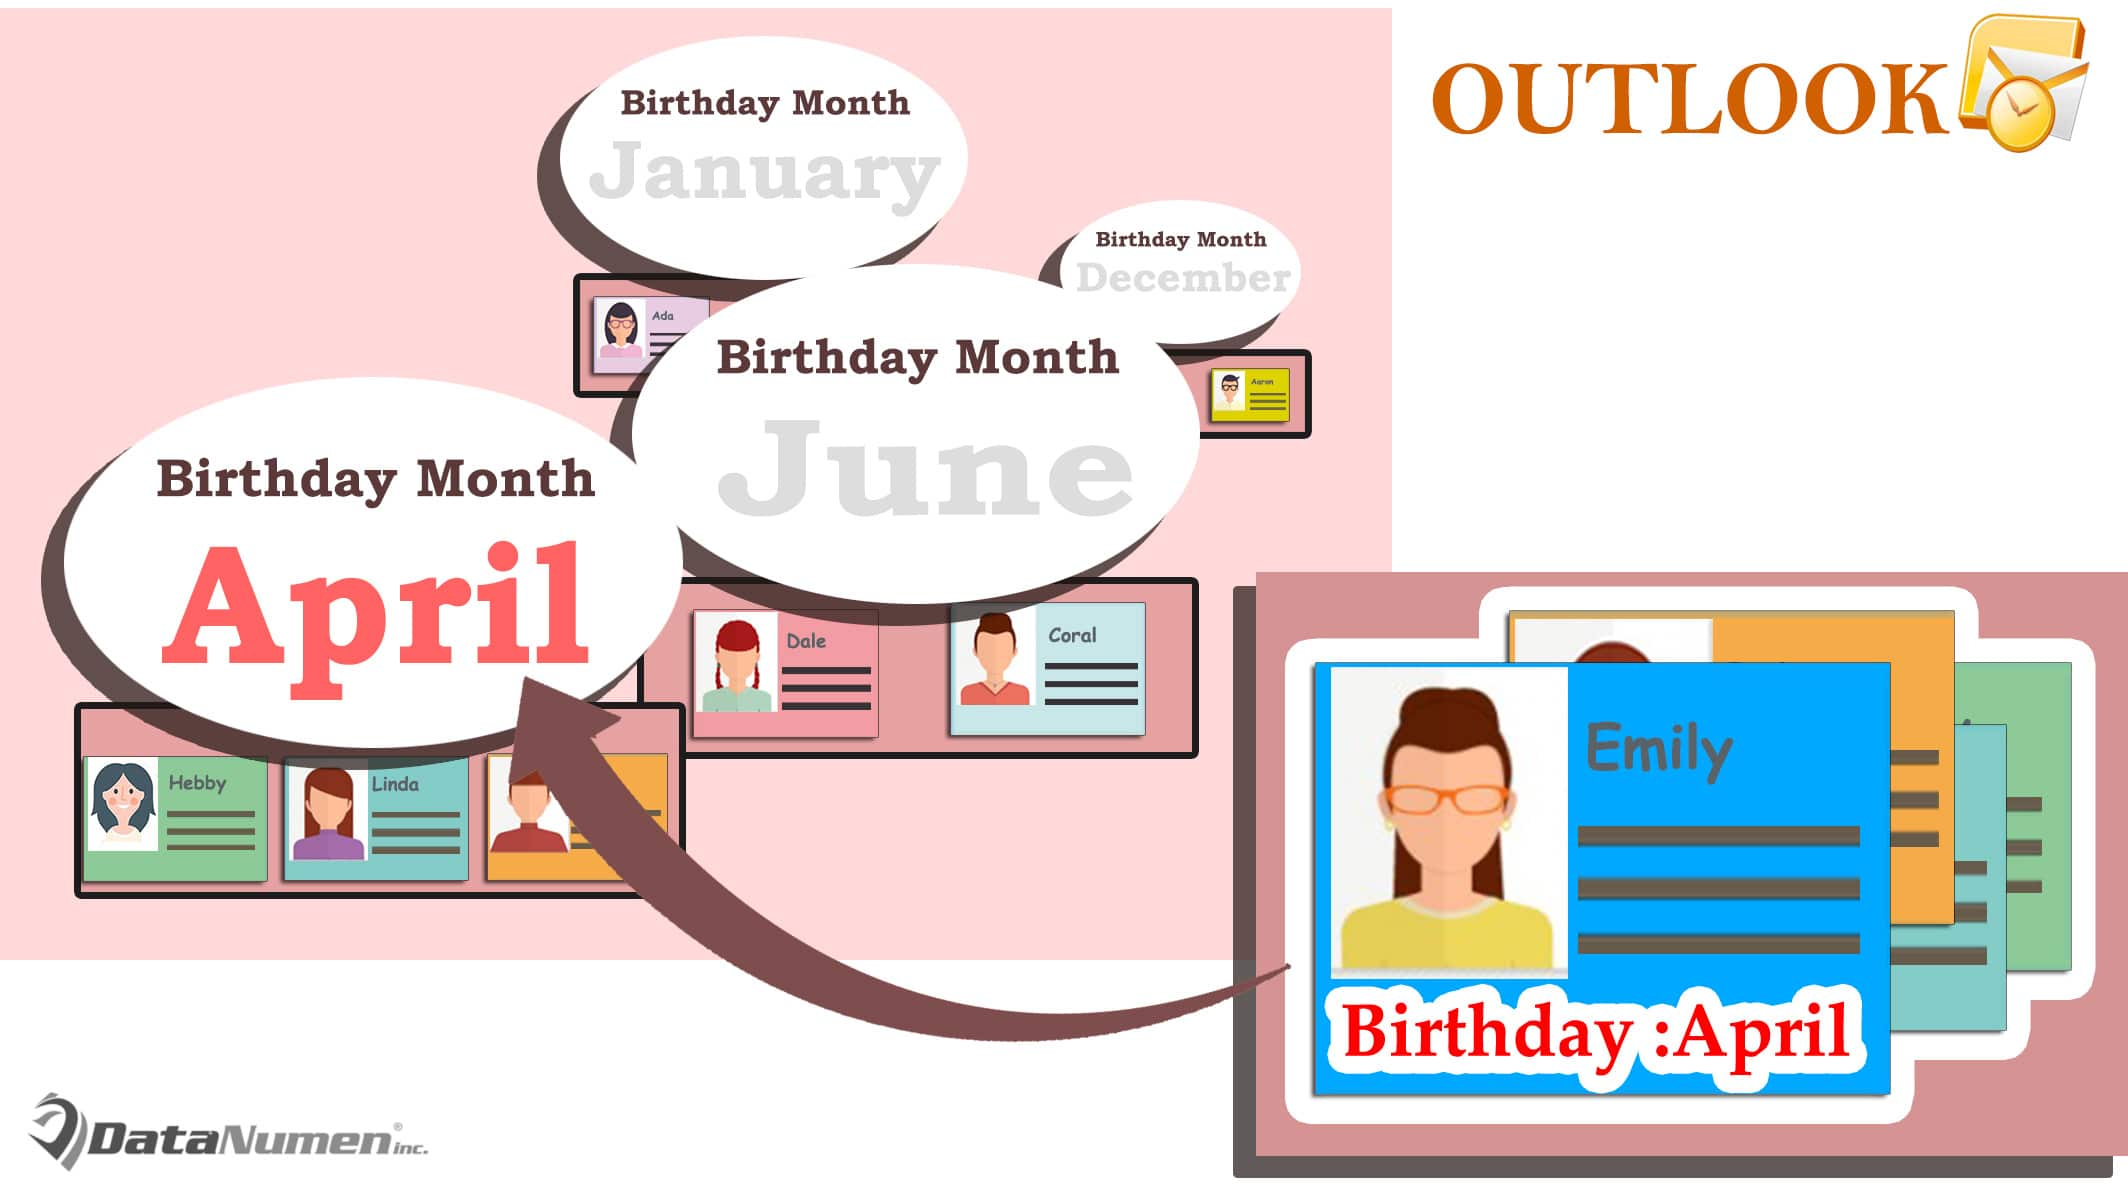 Quickly Group Outlook Contacts by Birthday Month in List View